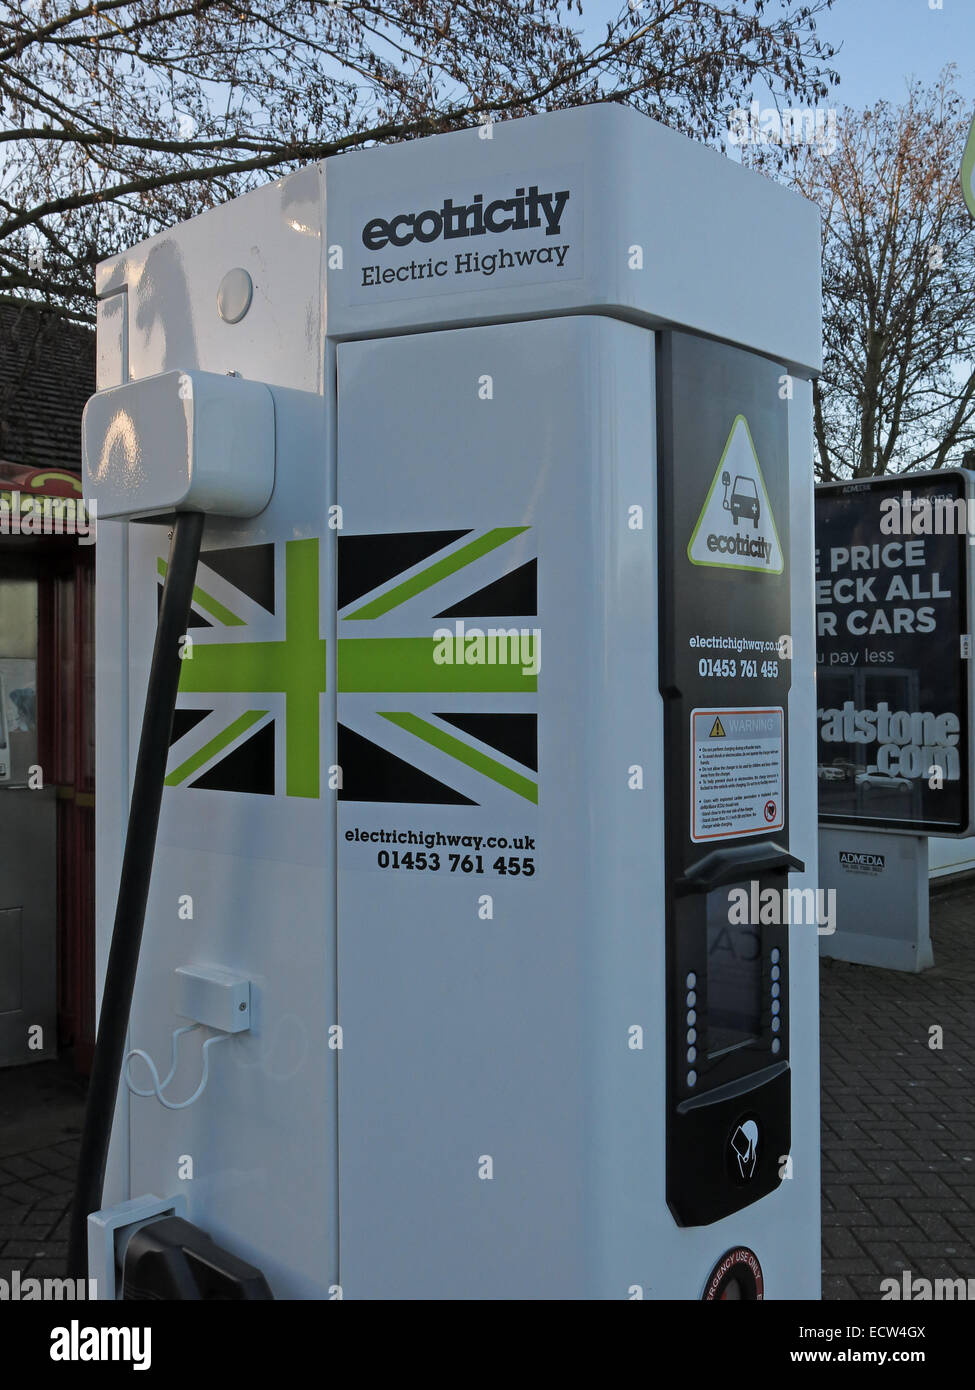 Ecotricity electric car charging station Warwick Services M40, Warwickshire, England UK - Stock Image